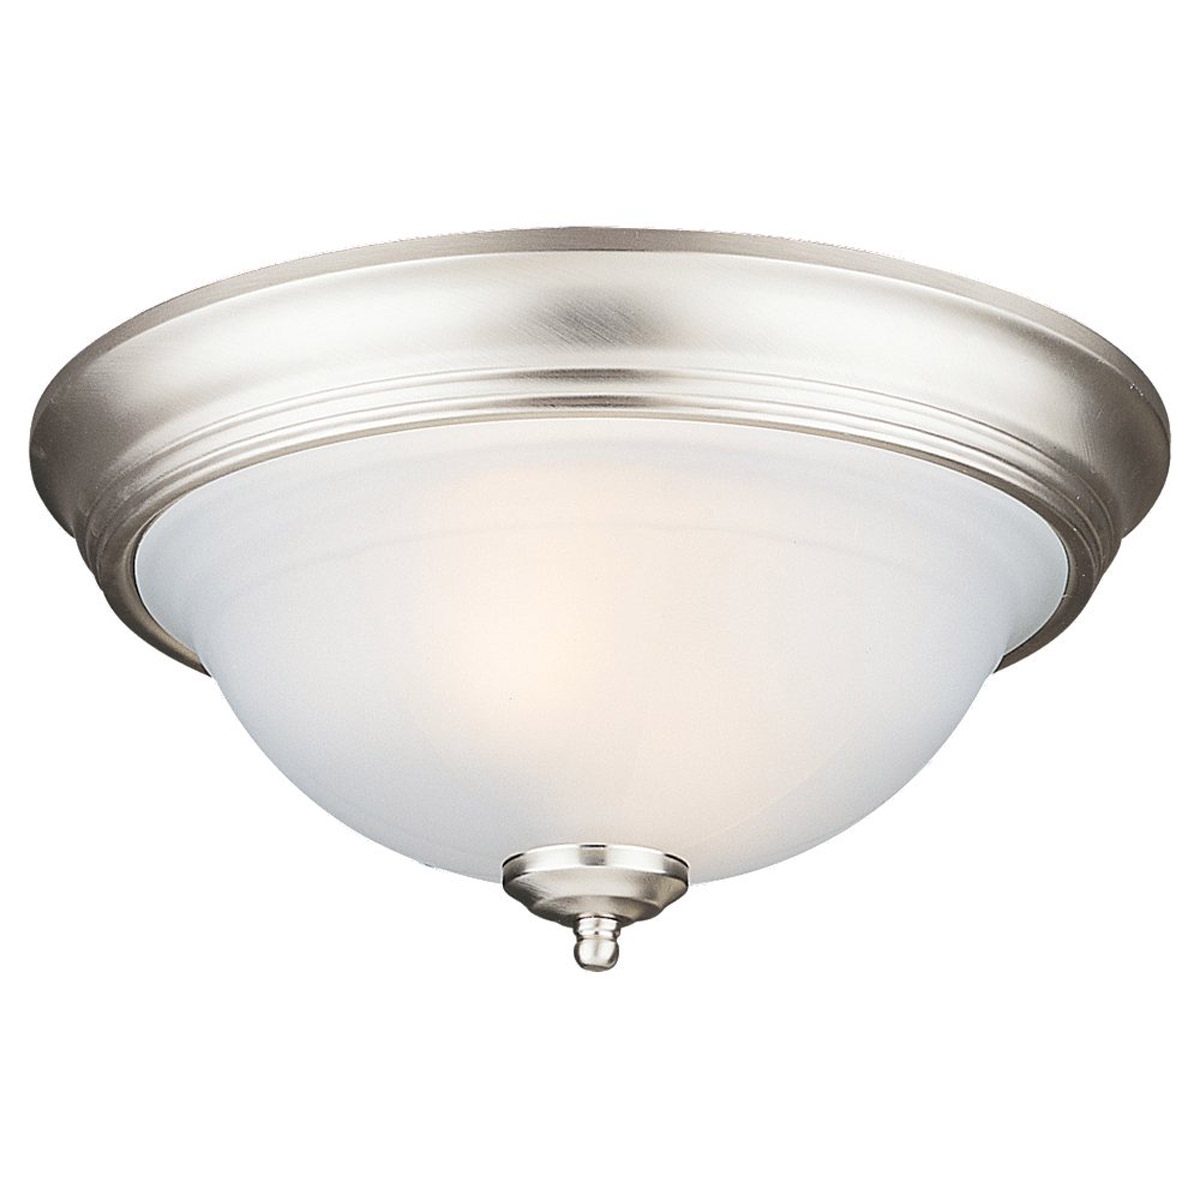 Sea Gull Lighting Canterbury 2 Light Flush Mount in Brushed Nickel 79150BLE-962 photo